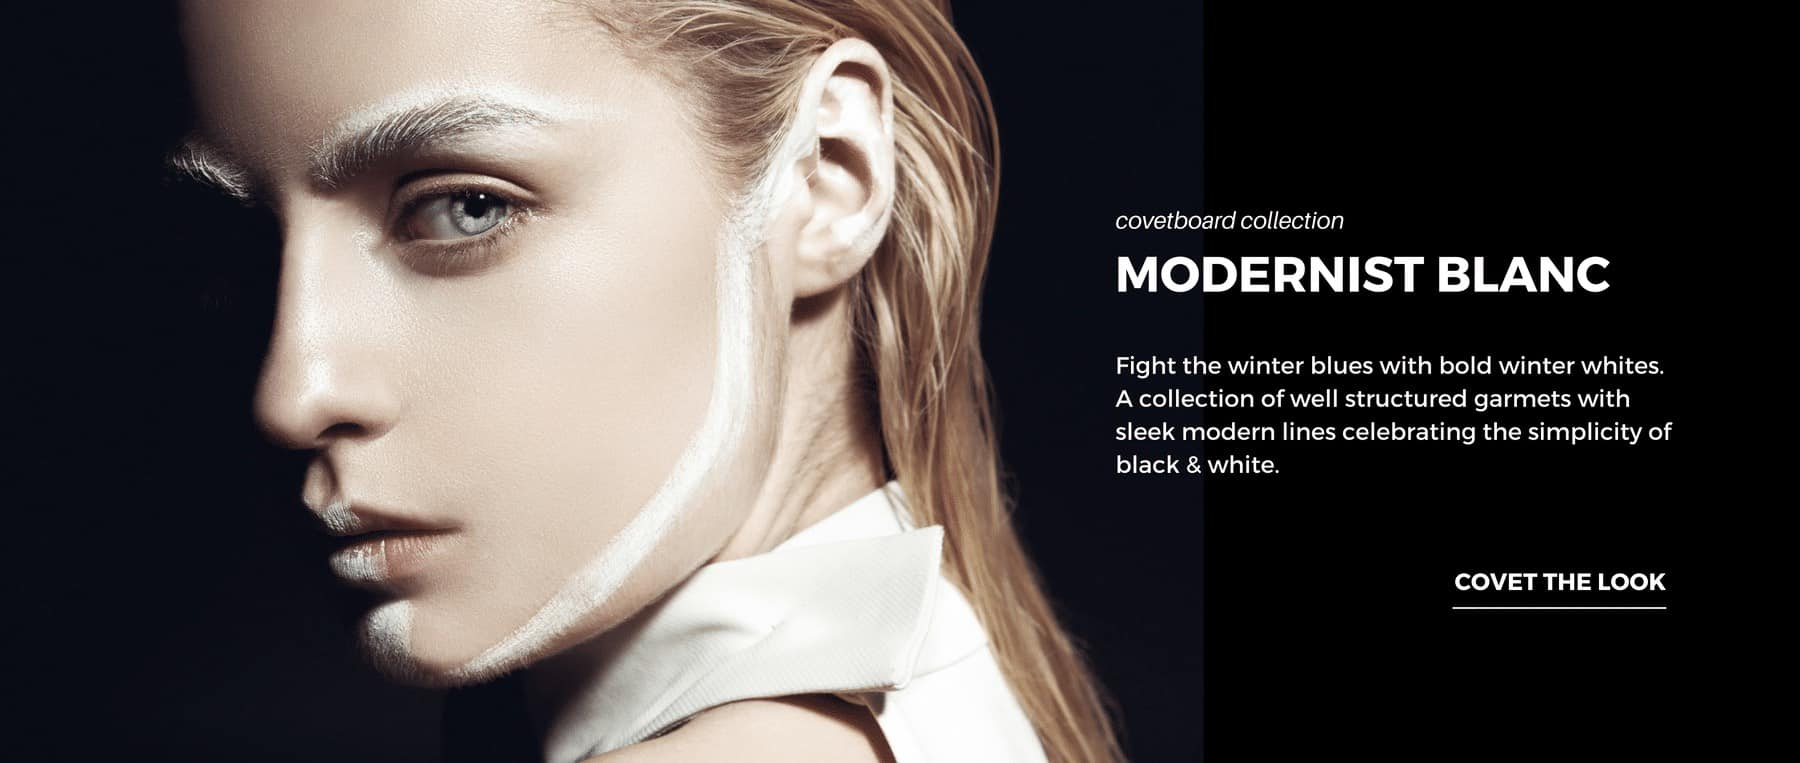 Covetboard Modernist Blanc Fashion Collection